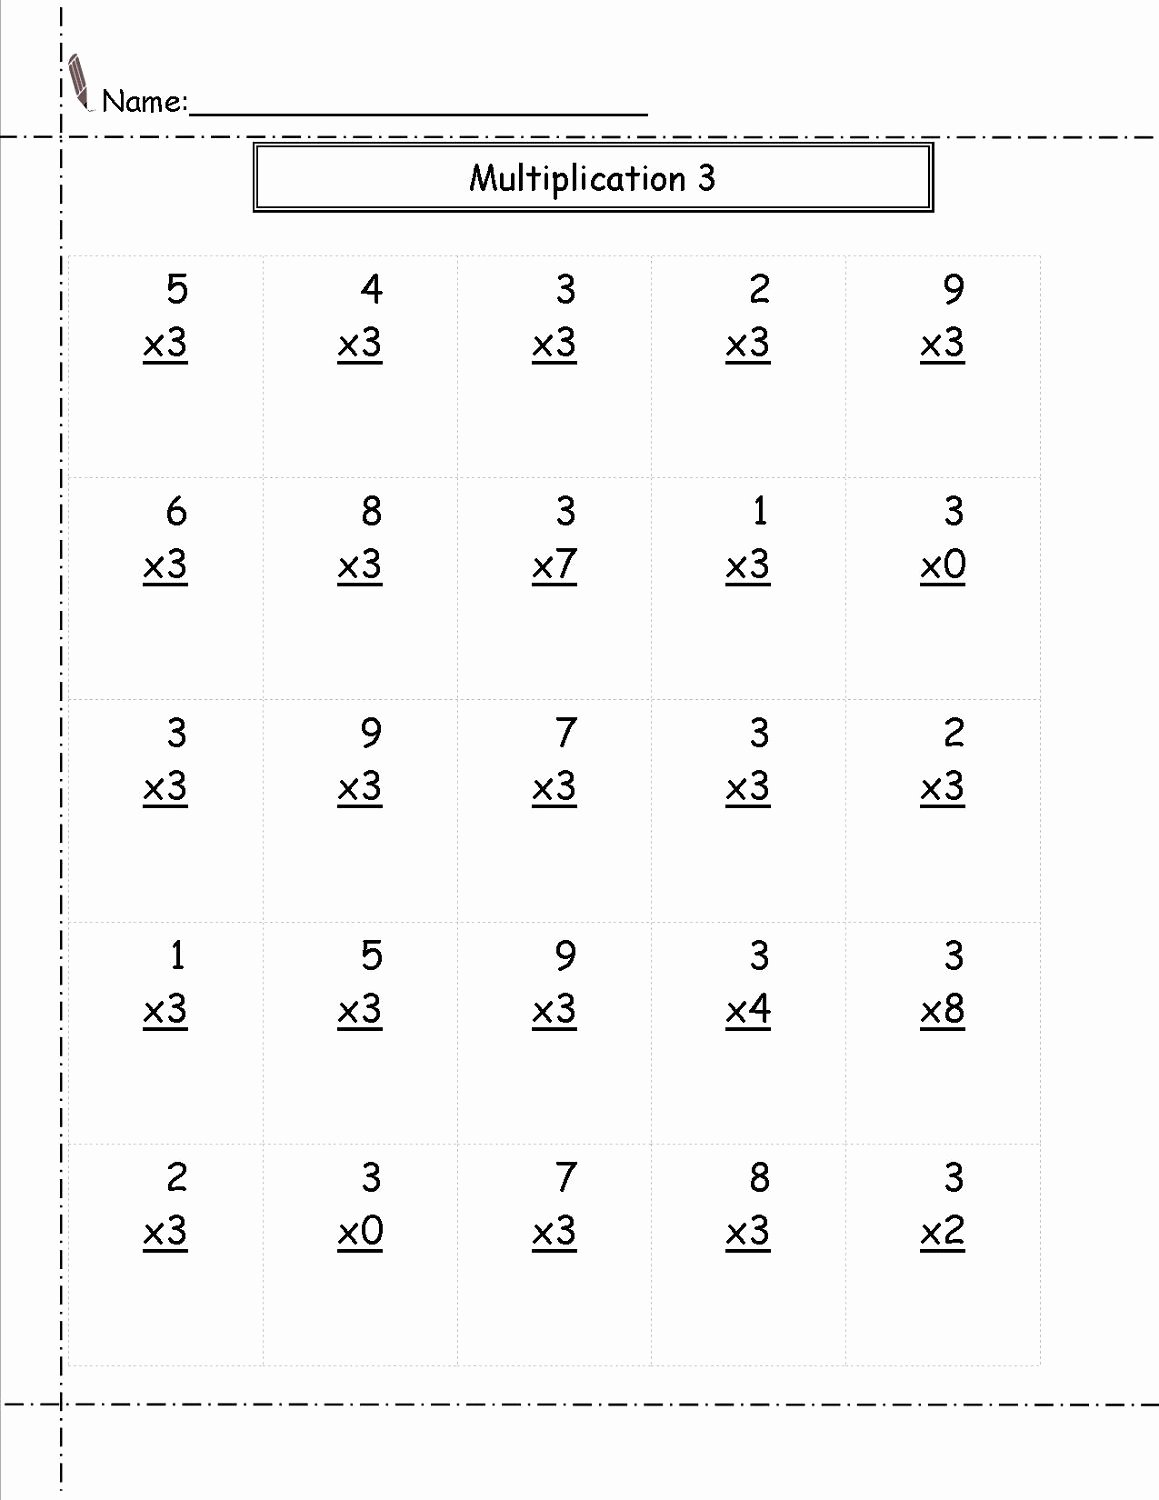 3s Multiplication Worksheets top Multiply by 3 Worksheet Free